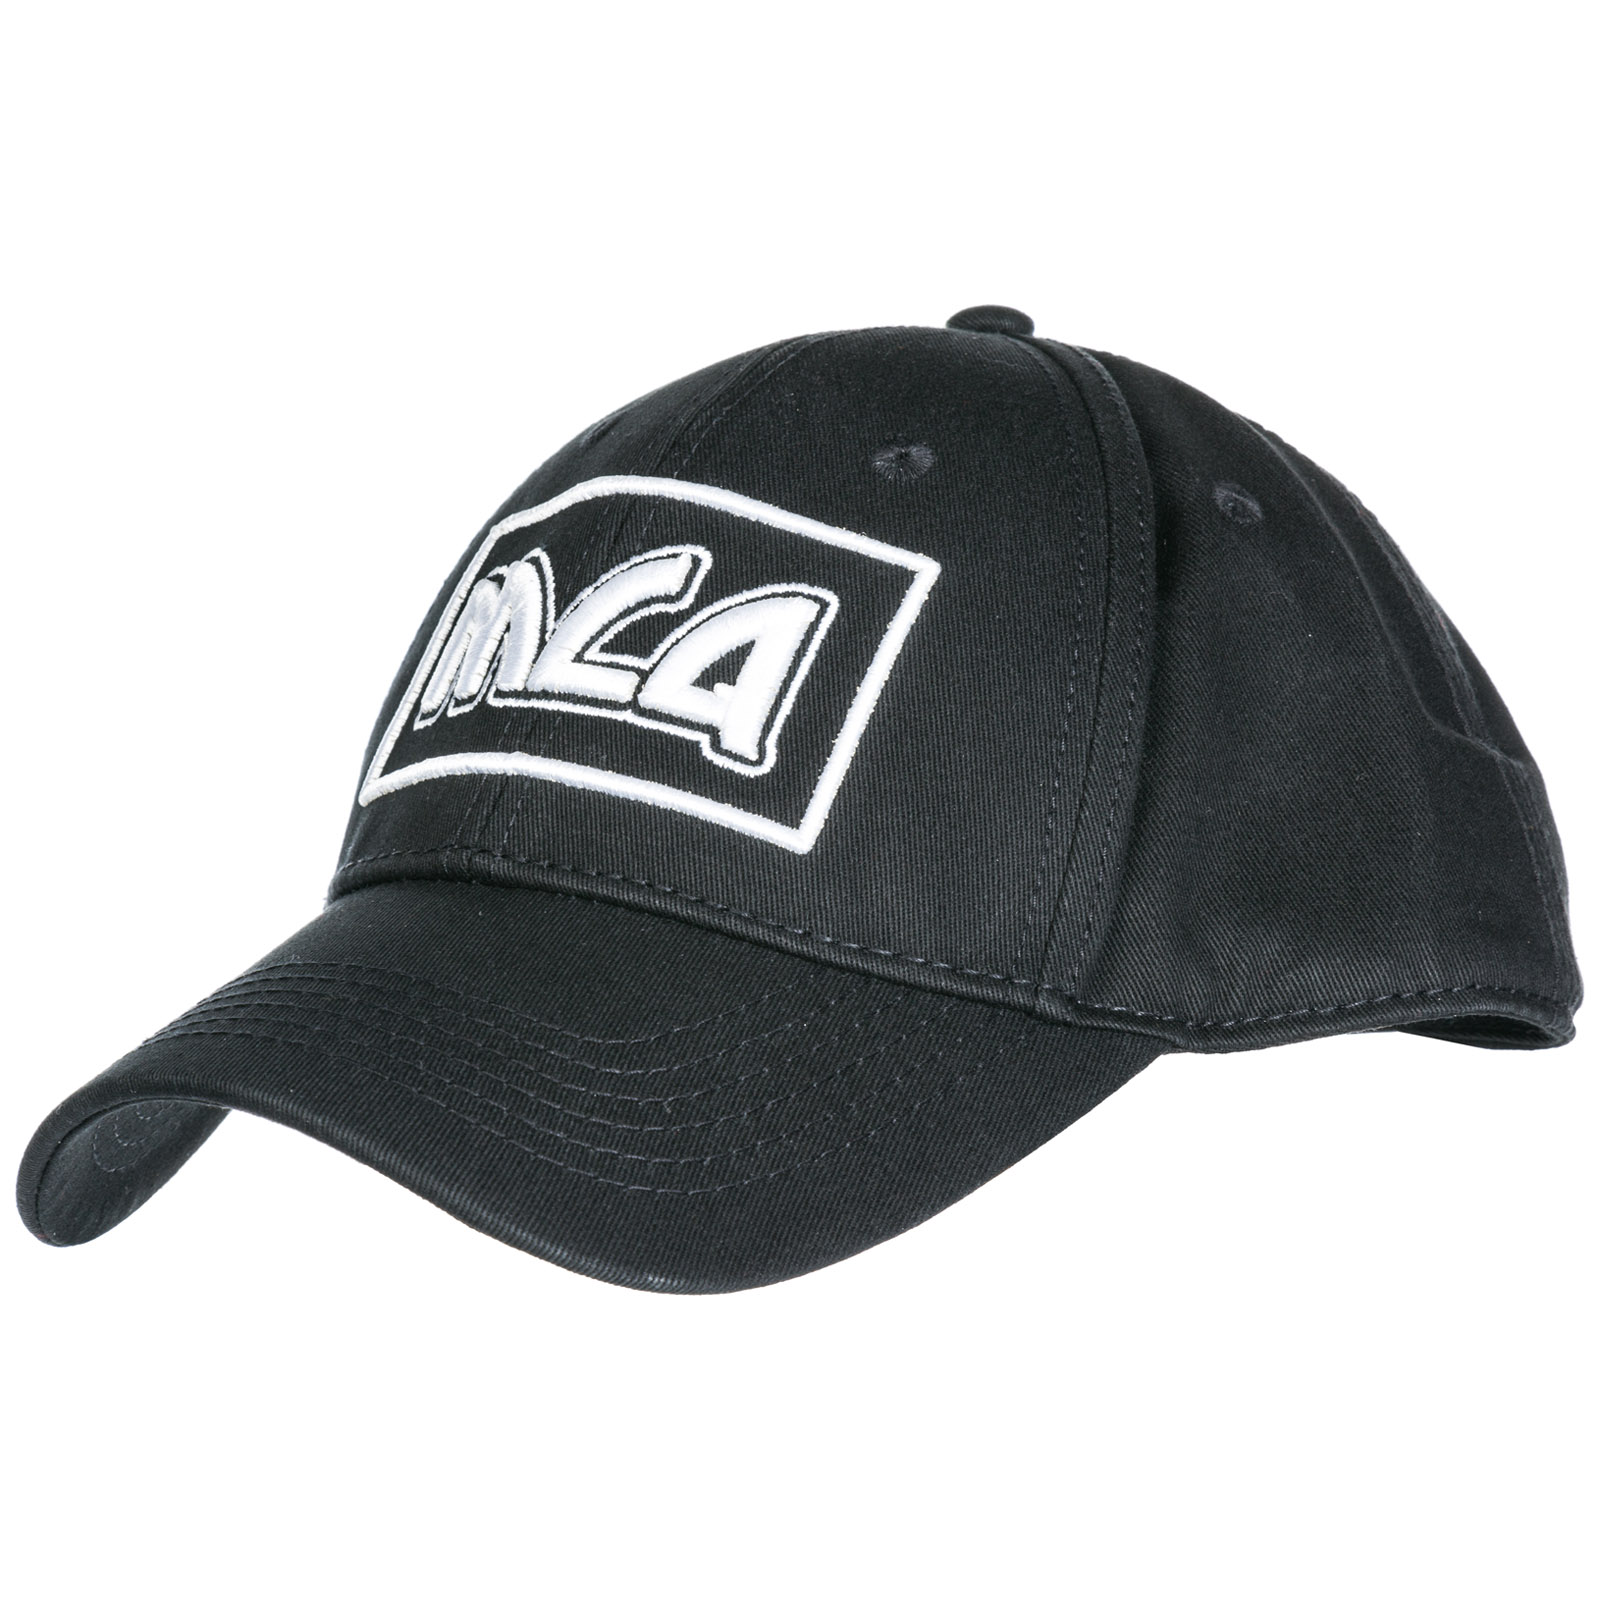 MCQ Alexander McQueen Adjustable men s cotton hat baseball cap metal logo 26bf14487c48